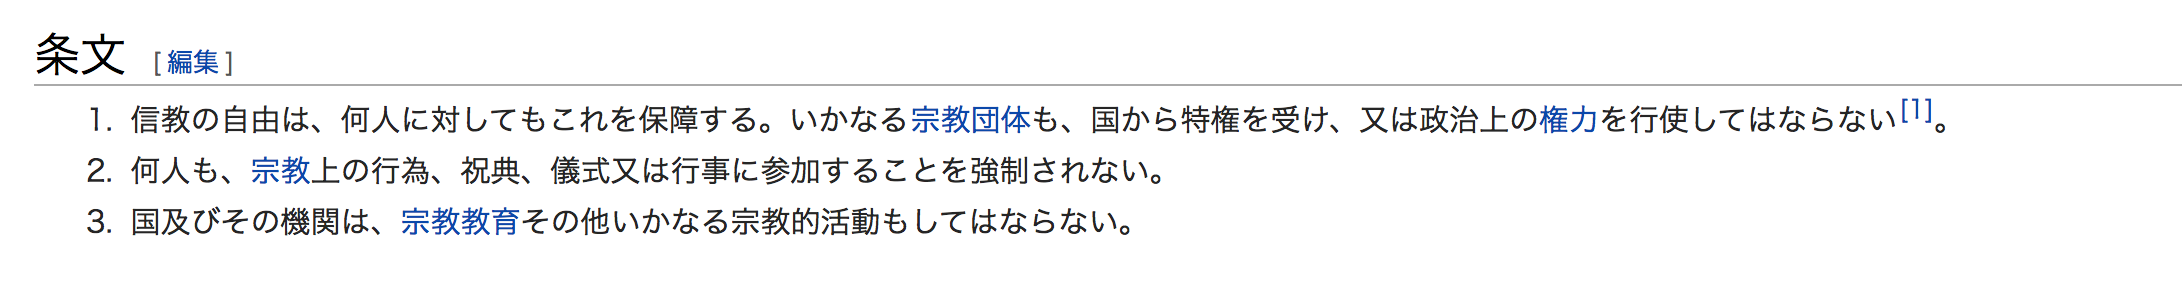 20160319203052c19.png